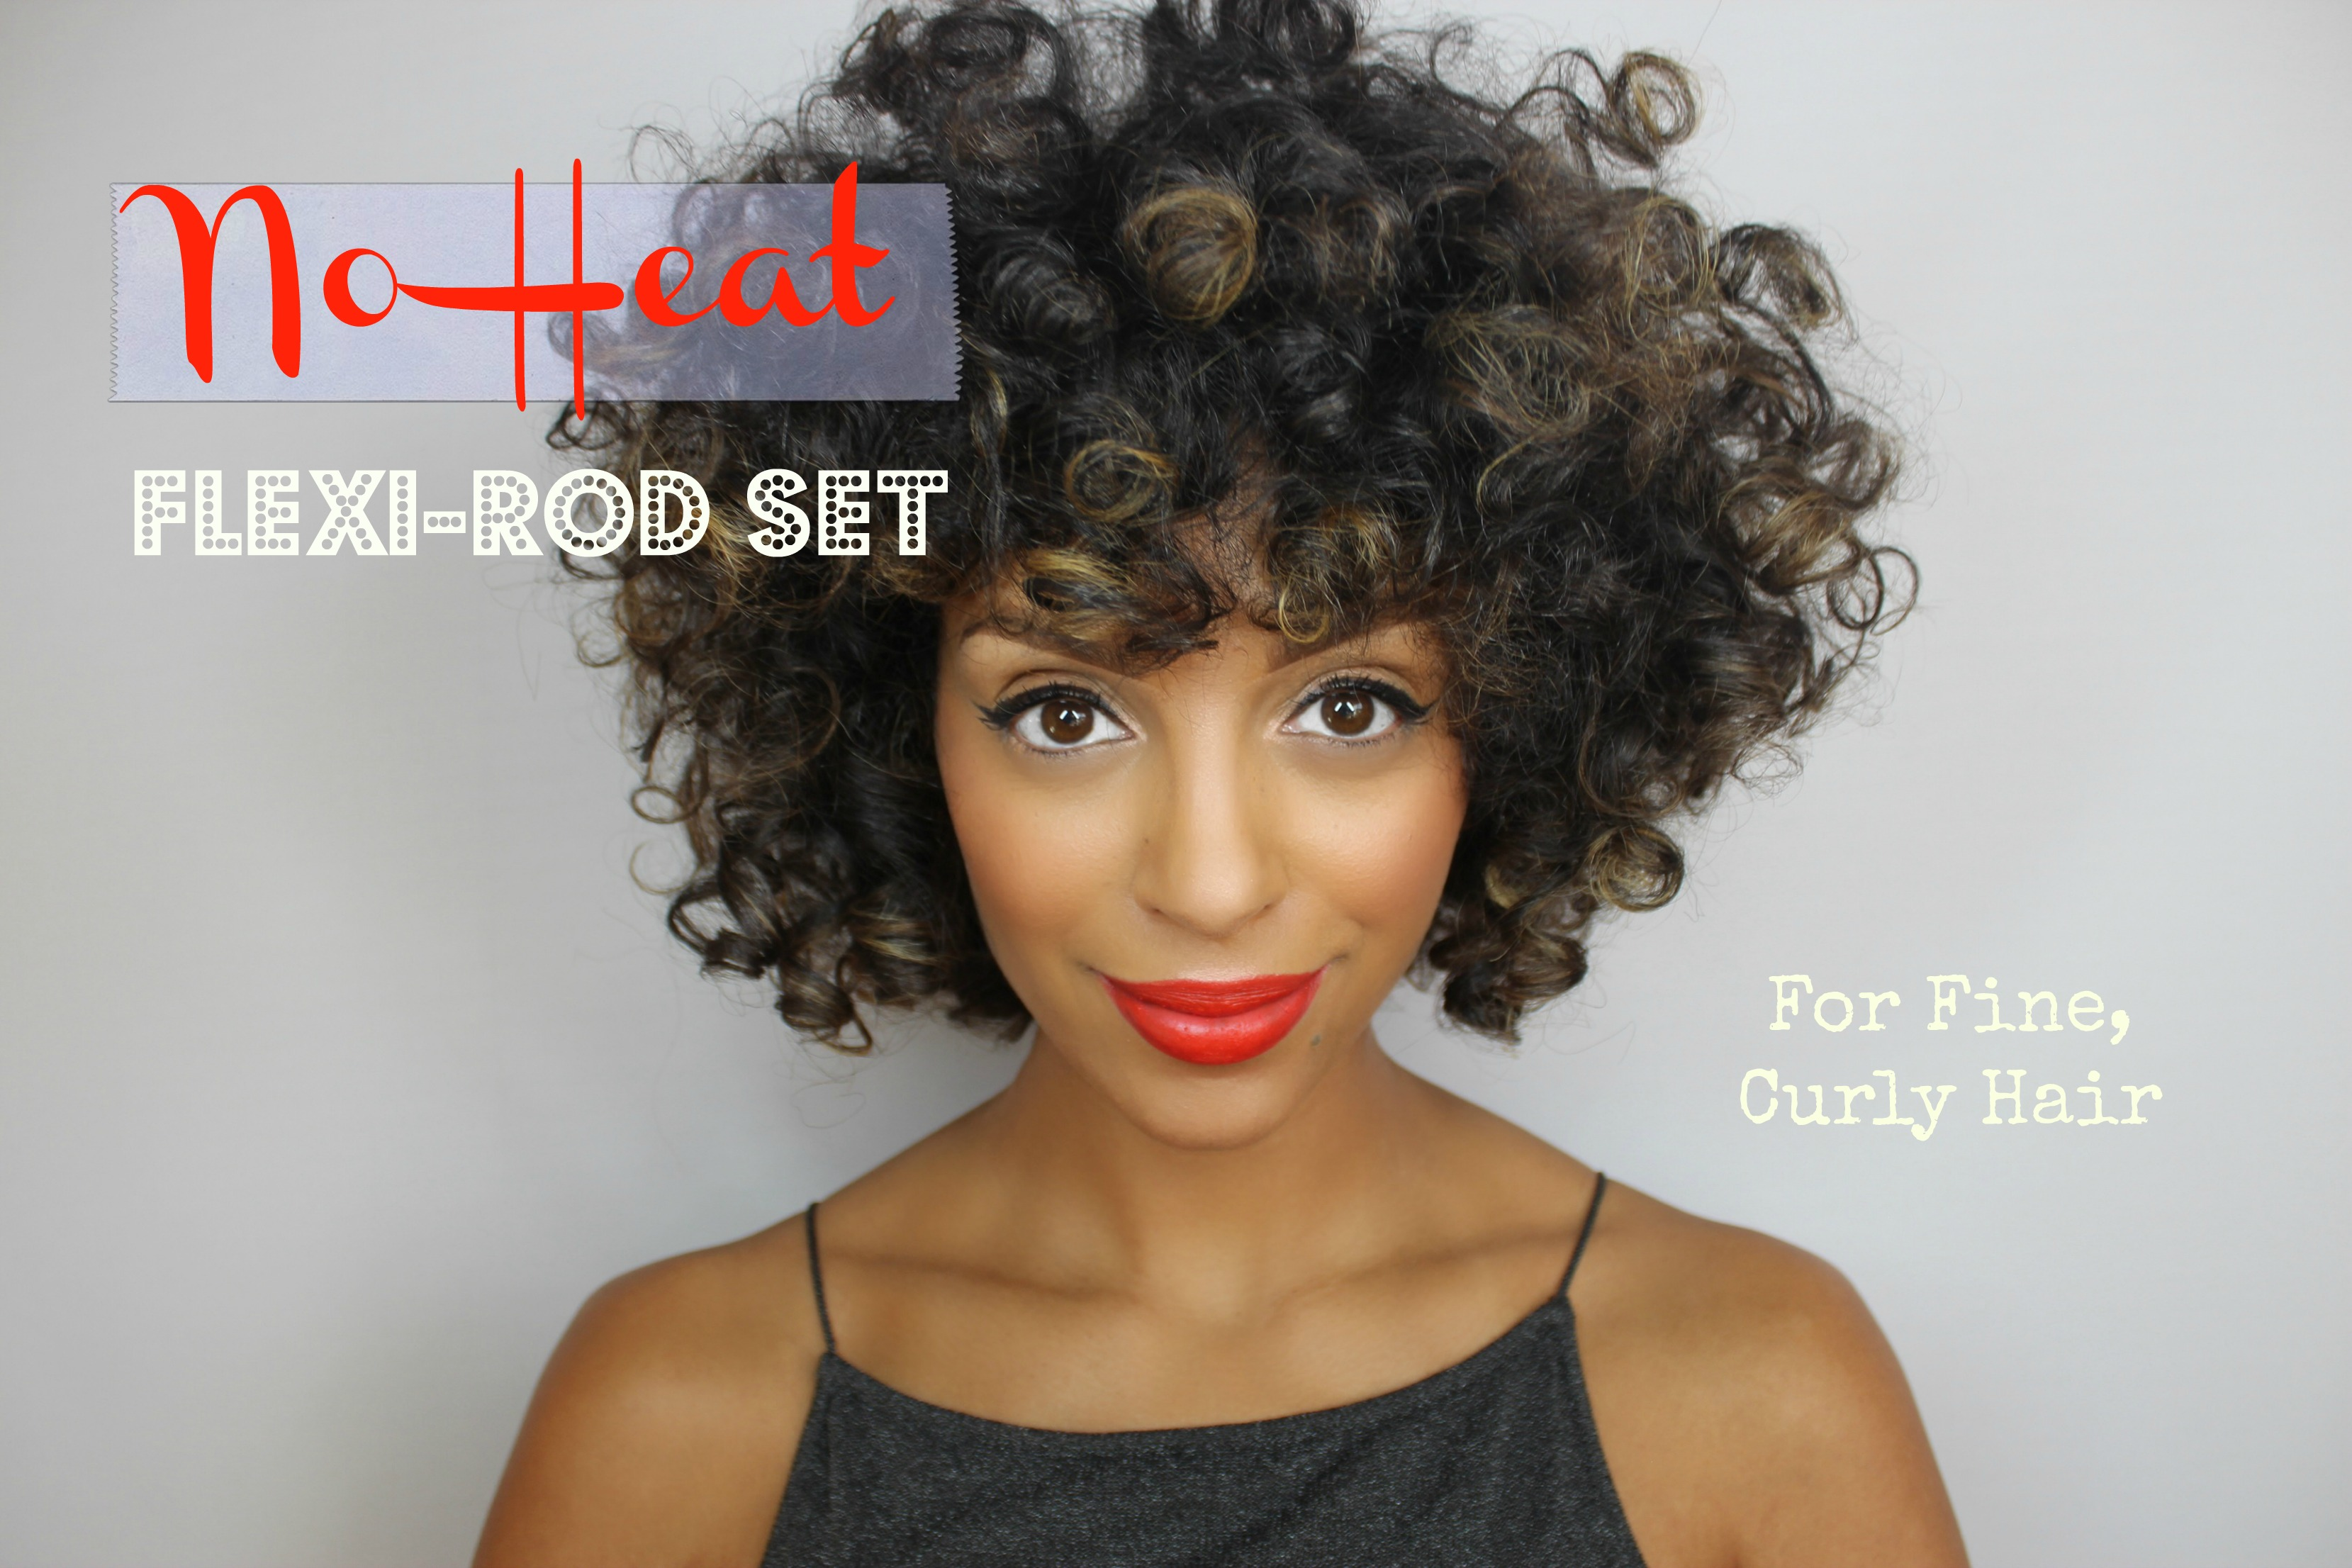 How To Get Perfect Flexi Rod Results On Natural Hair